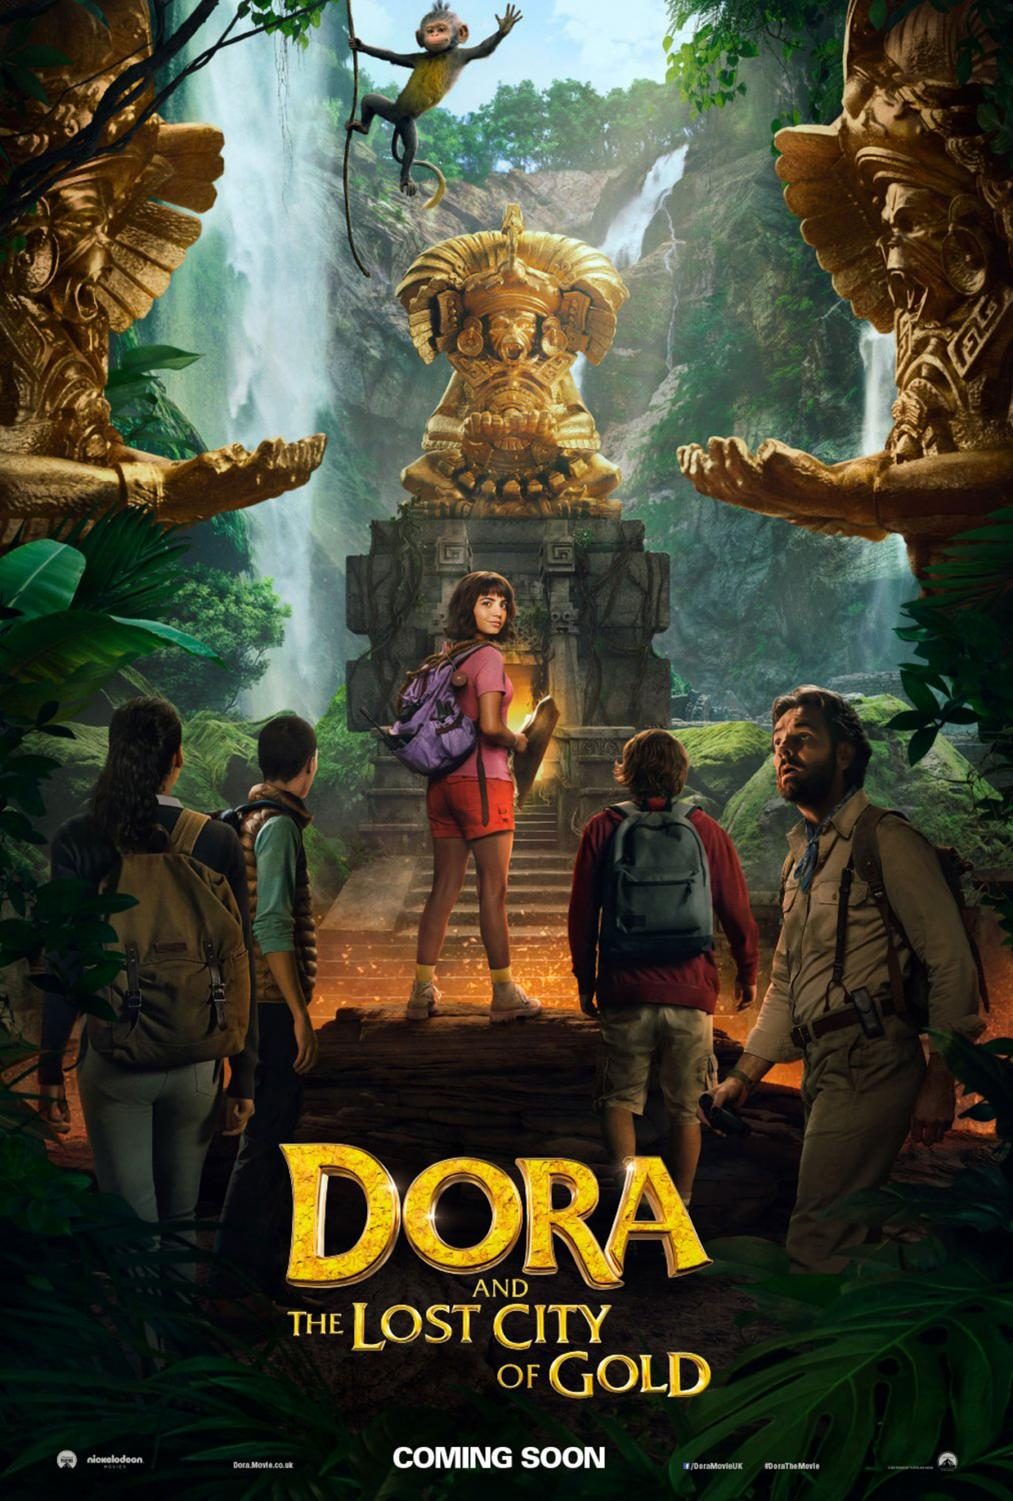 The official movie poster for Dora and the Lost City of Gold.